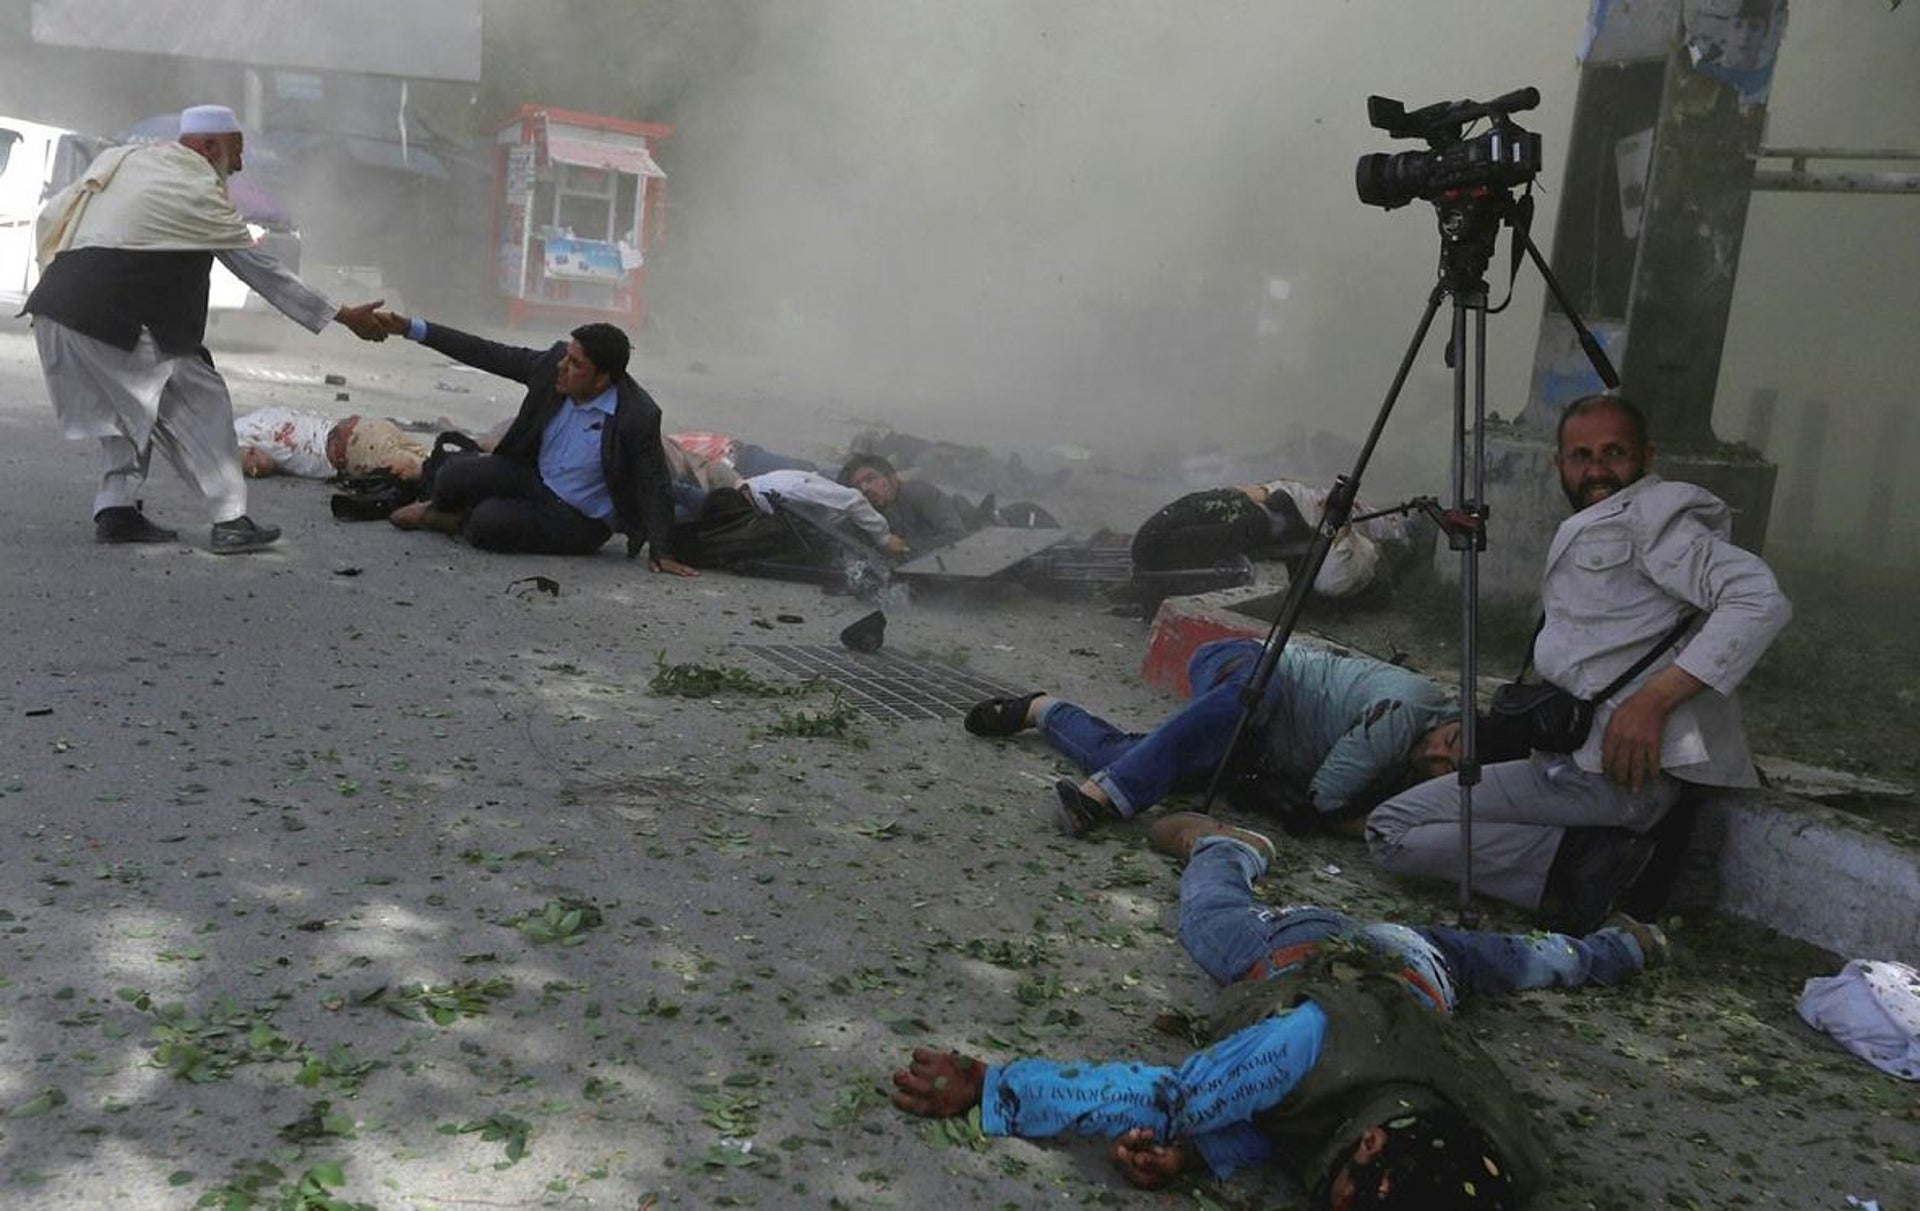 Afghan journalists are seen after a second blast in Kabul, Afghanistan, April 30, 2018